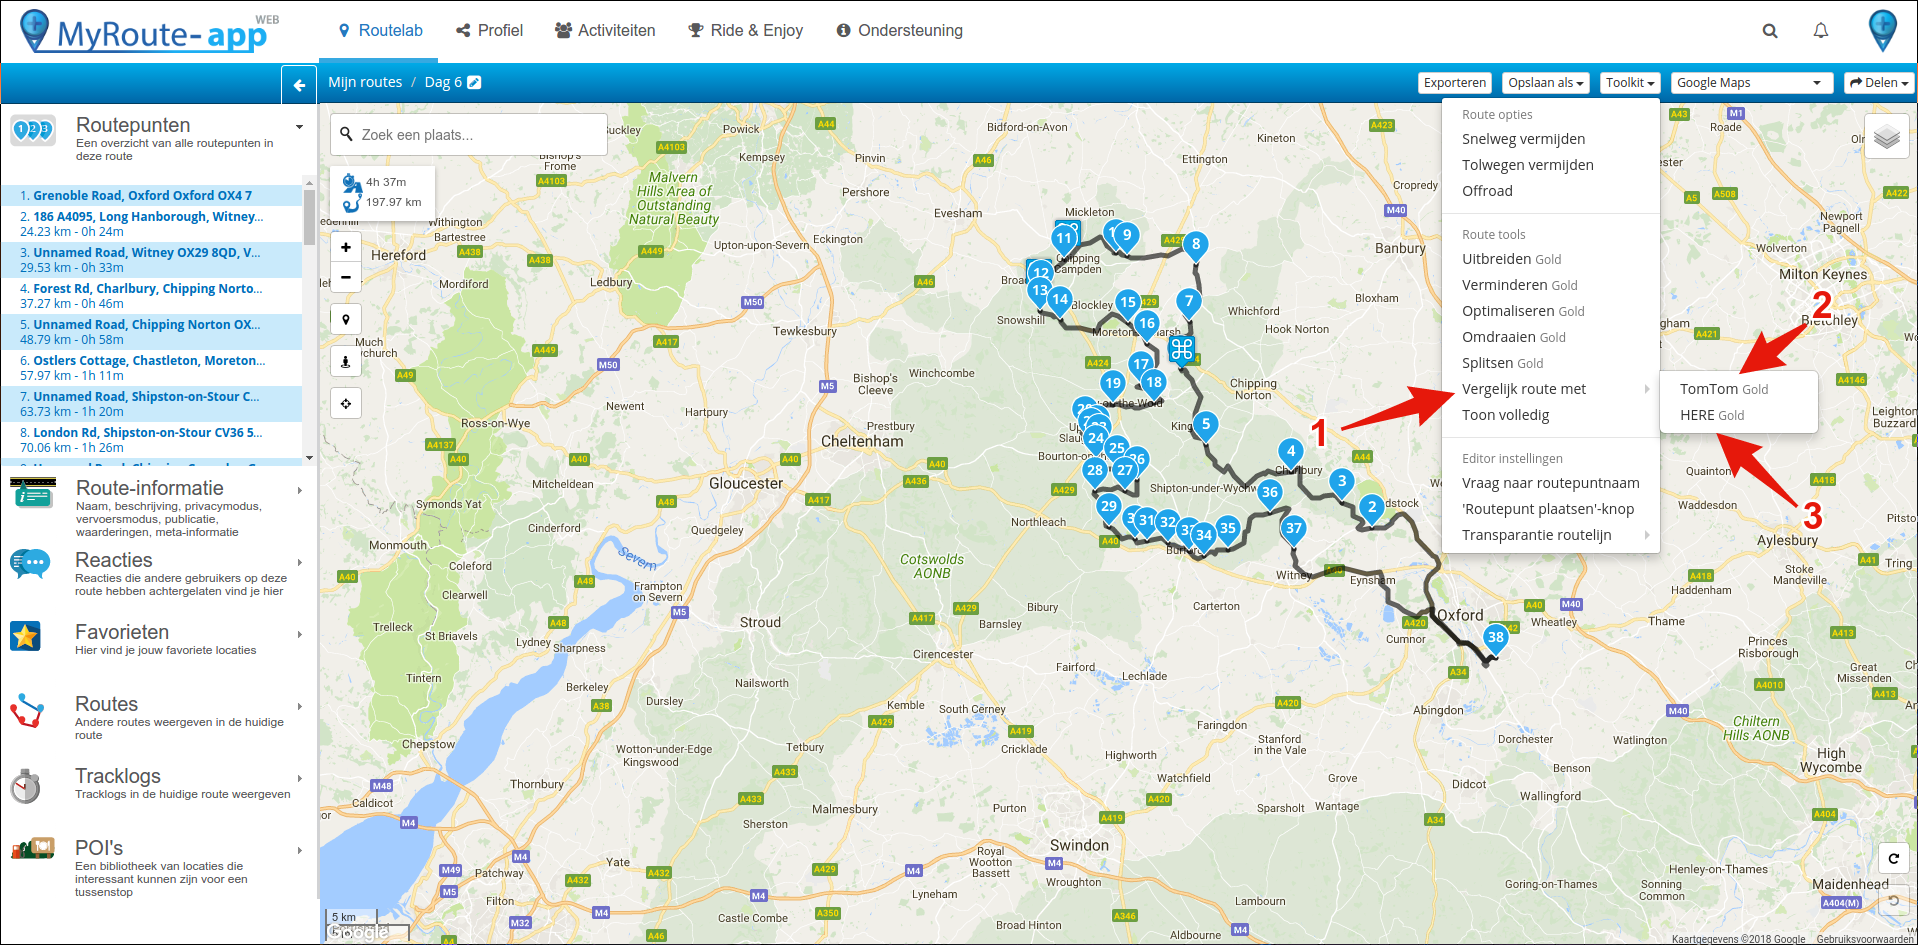 Tips & Tricks web application: Compare route calculations